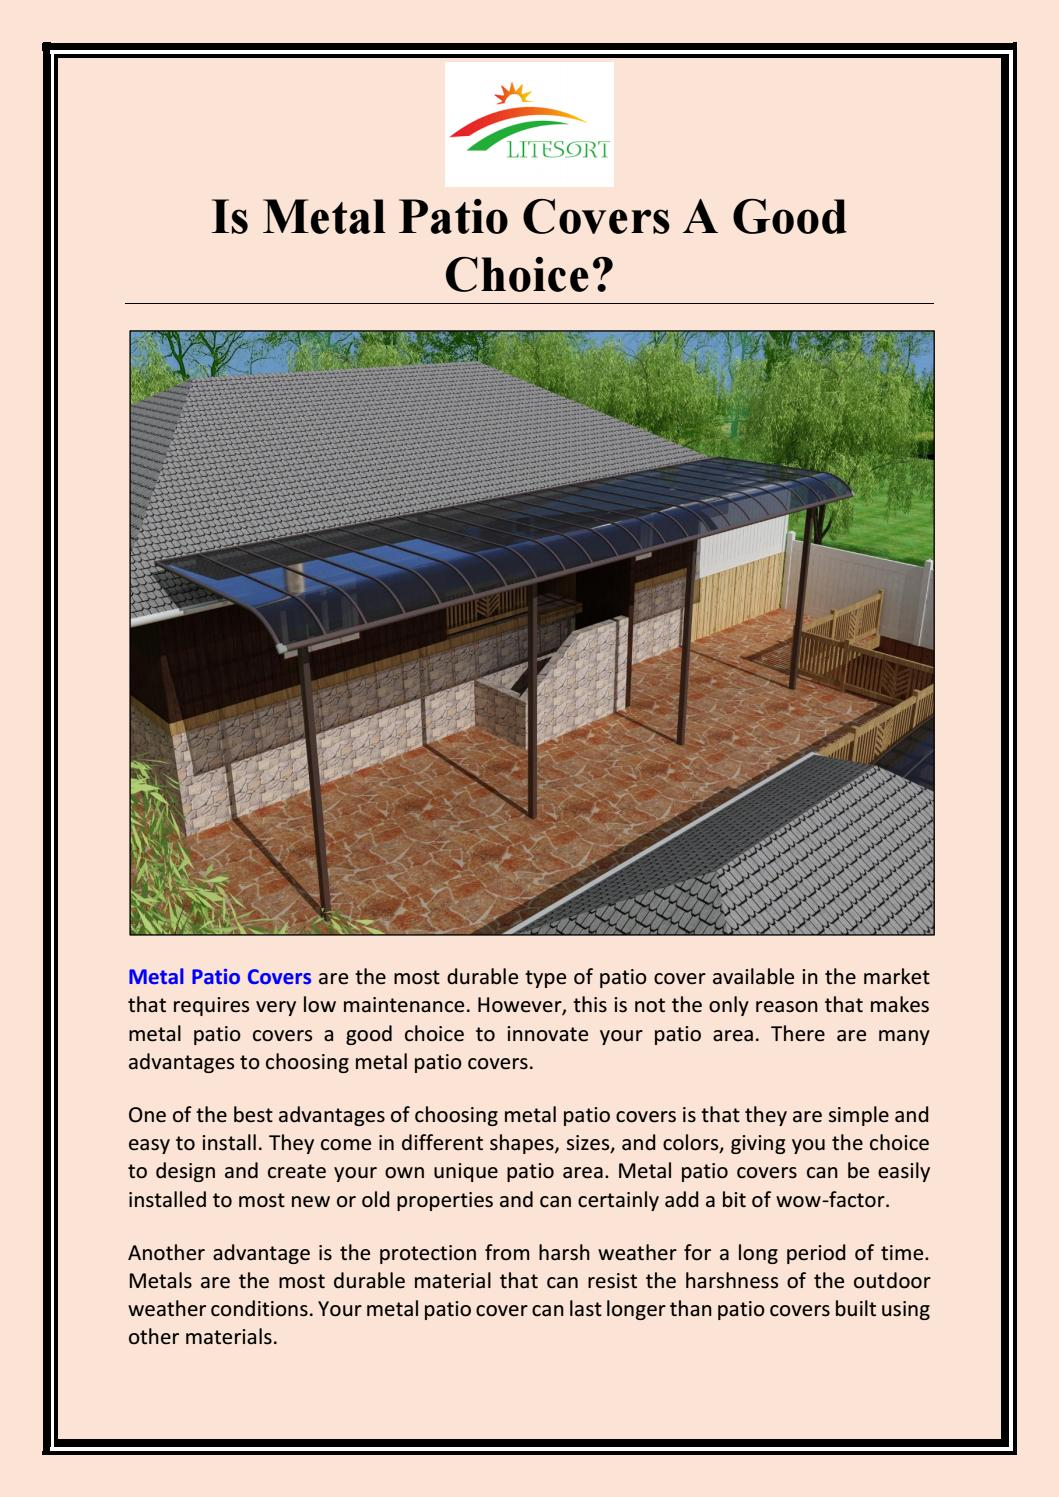 is metal patio covers a good choice by